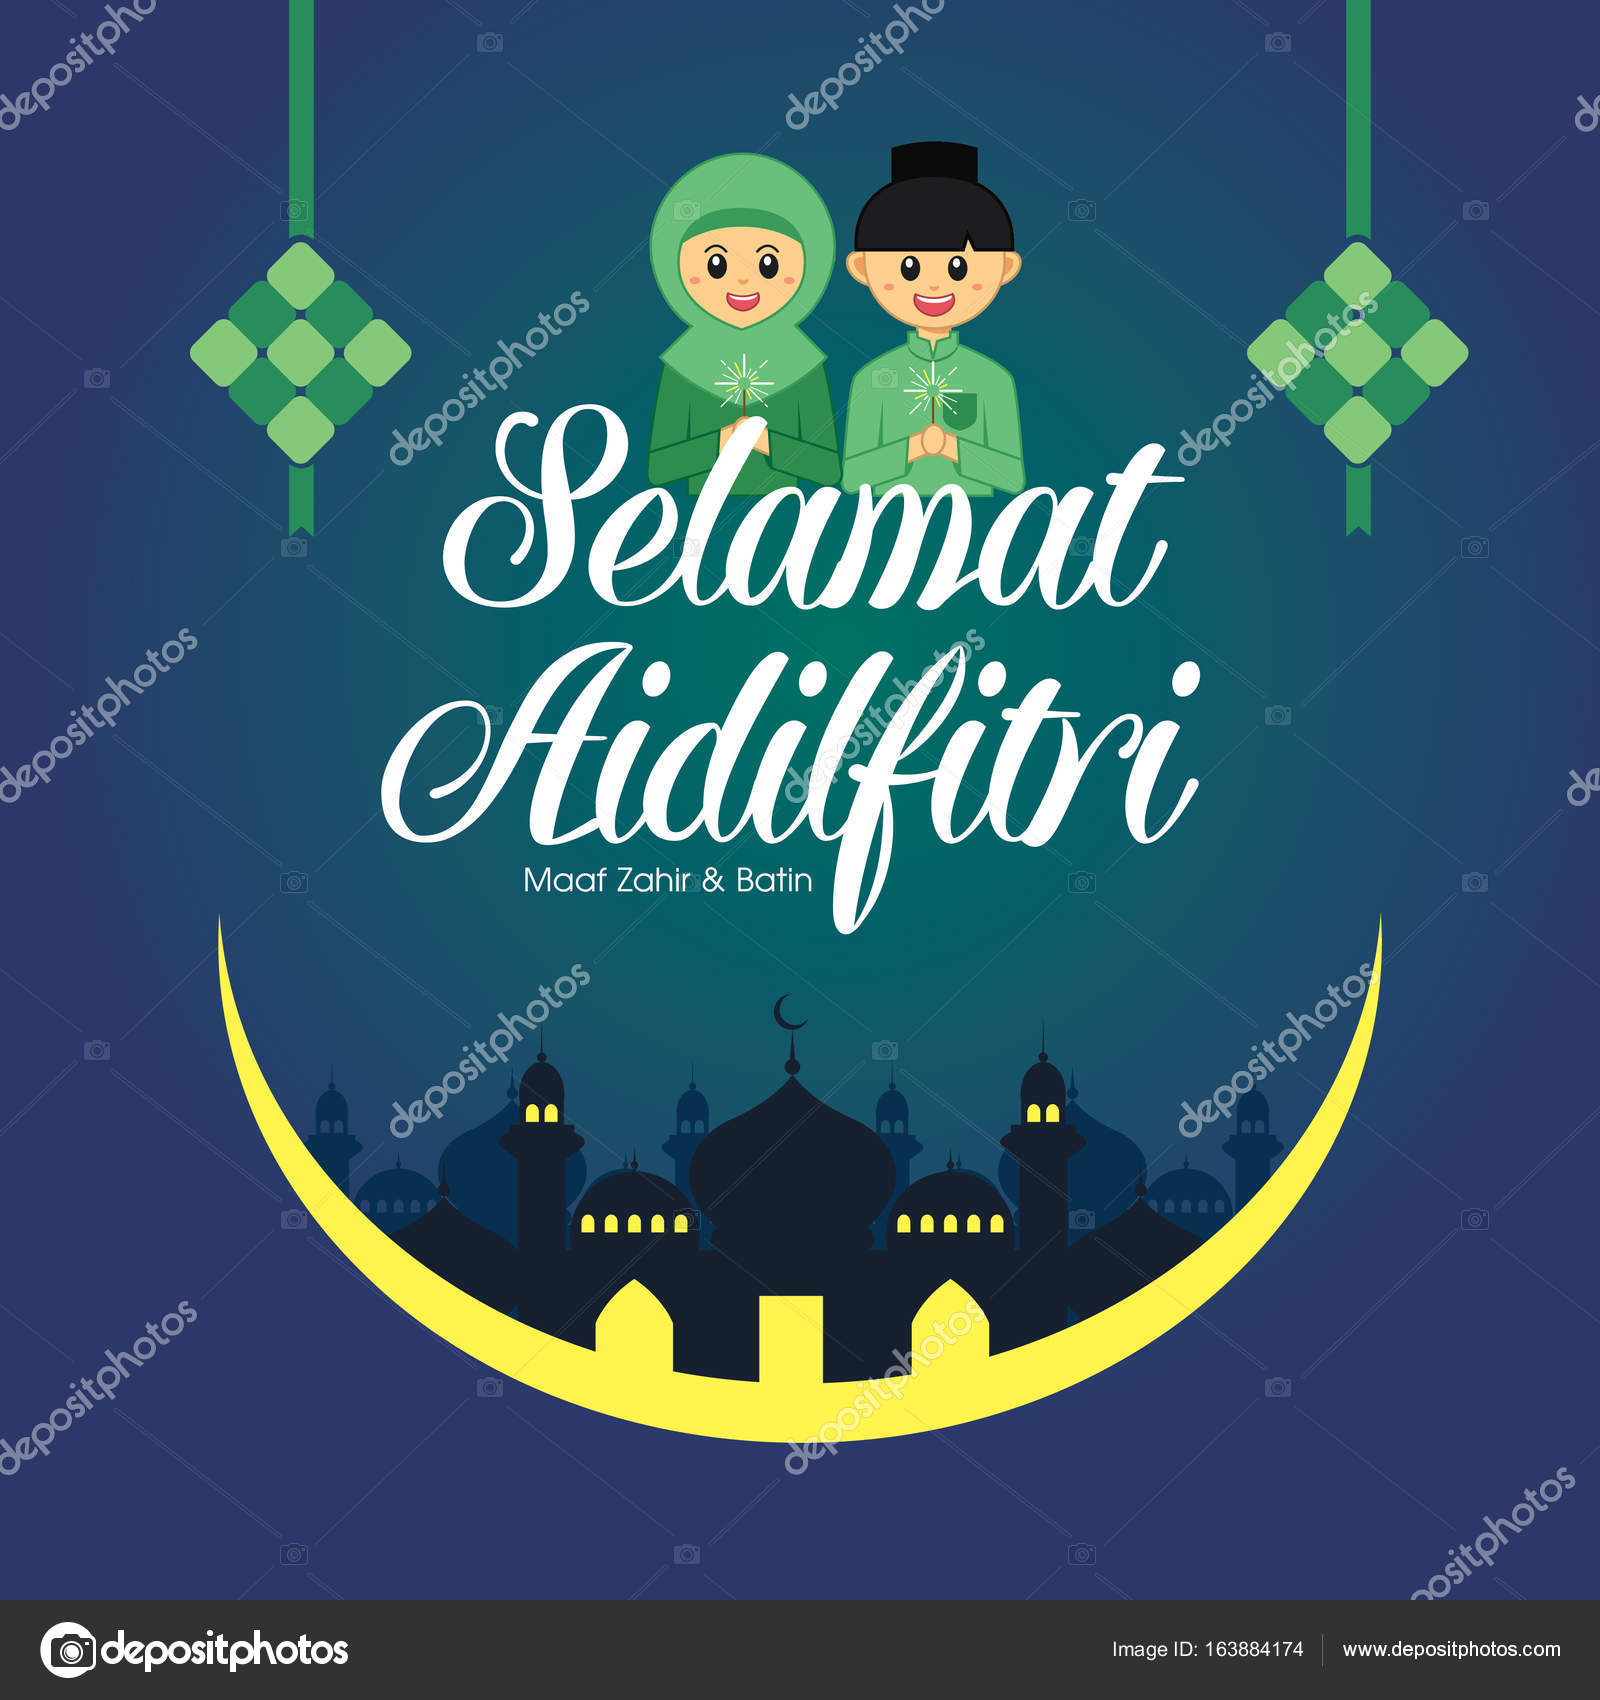 Selamat Hari Raya Aidilfitri Vector Illustration With Traditional Malay Mosque And Cute Muslim Boy And Girl